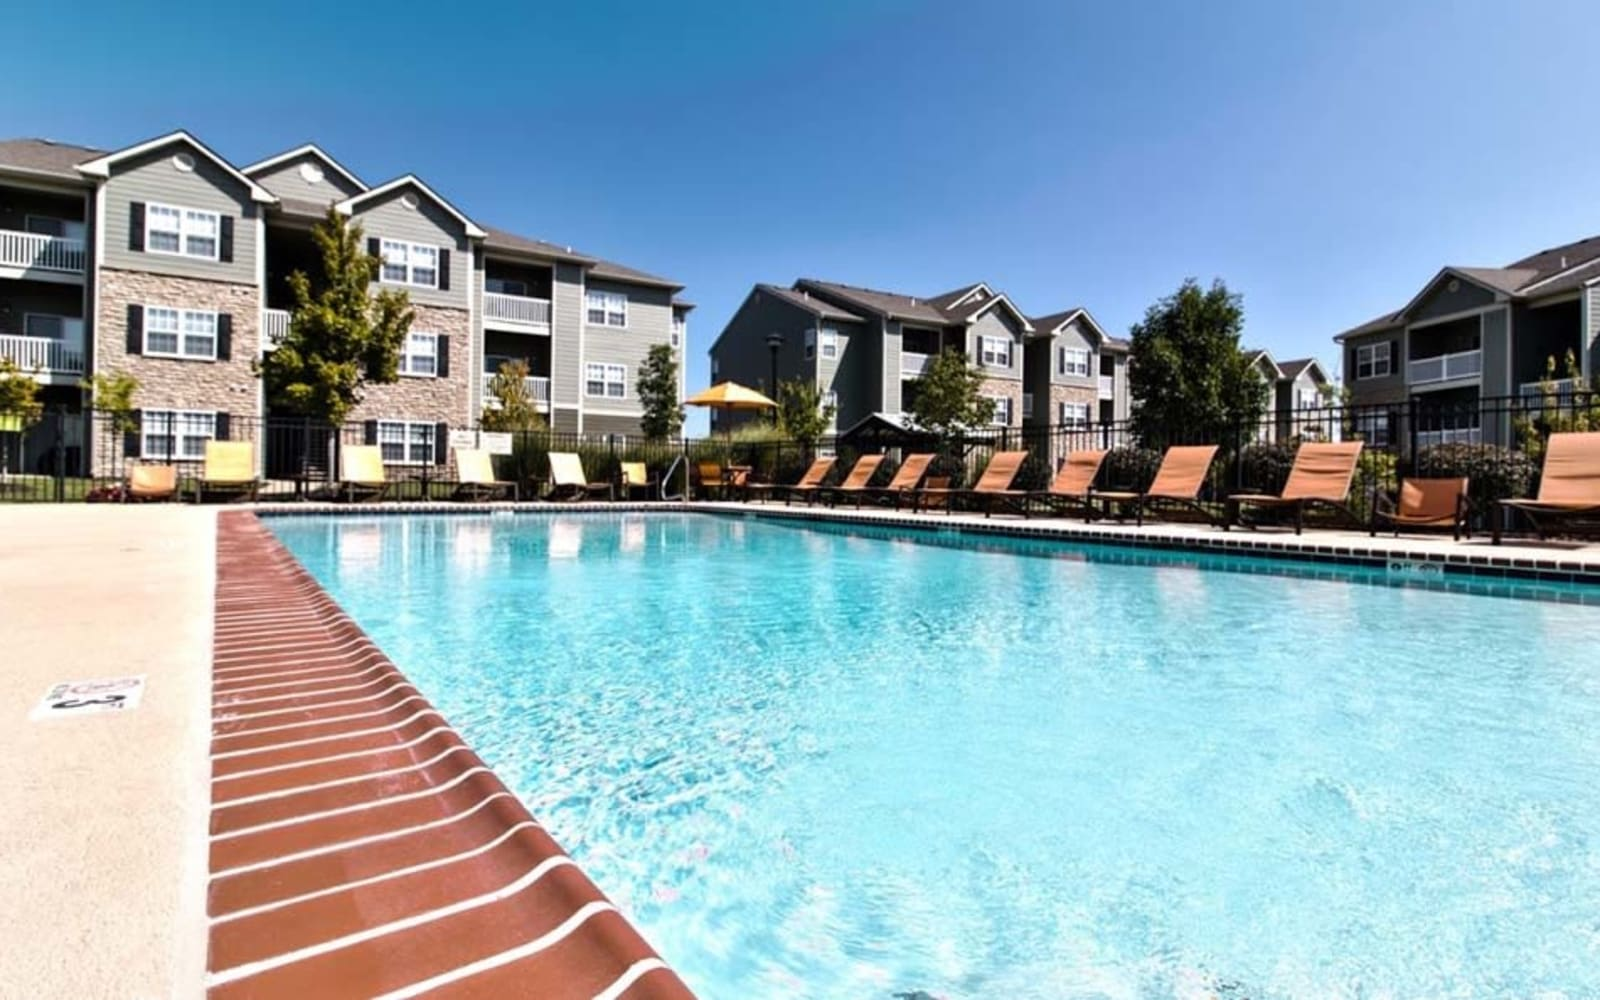 Resident pool with lounge chairs at Aventura at Richmond in Saint Peters, Missouri.